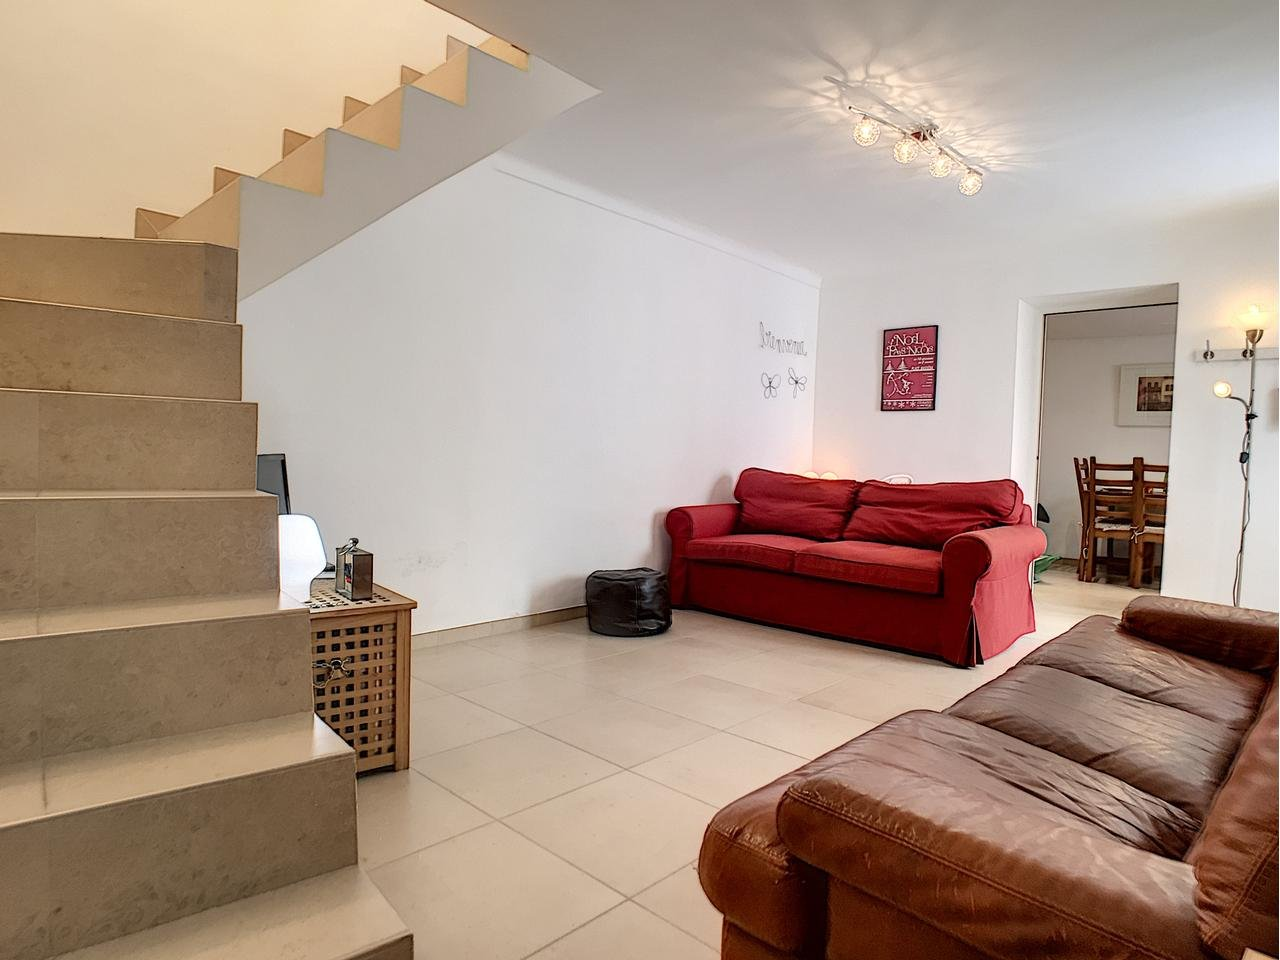 Appartement  2 Rooms 44m2  for sale   235000 €